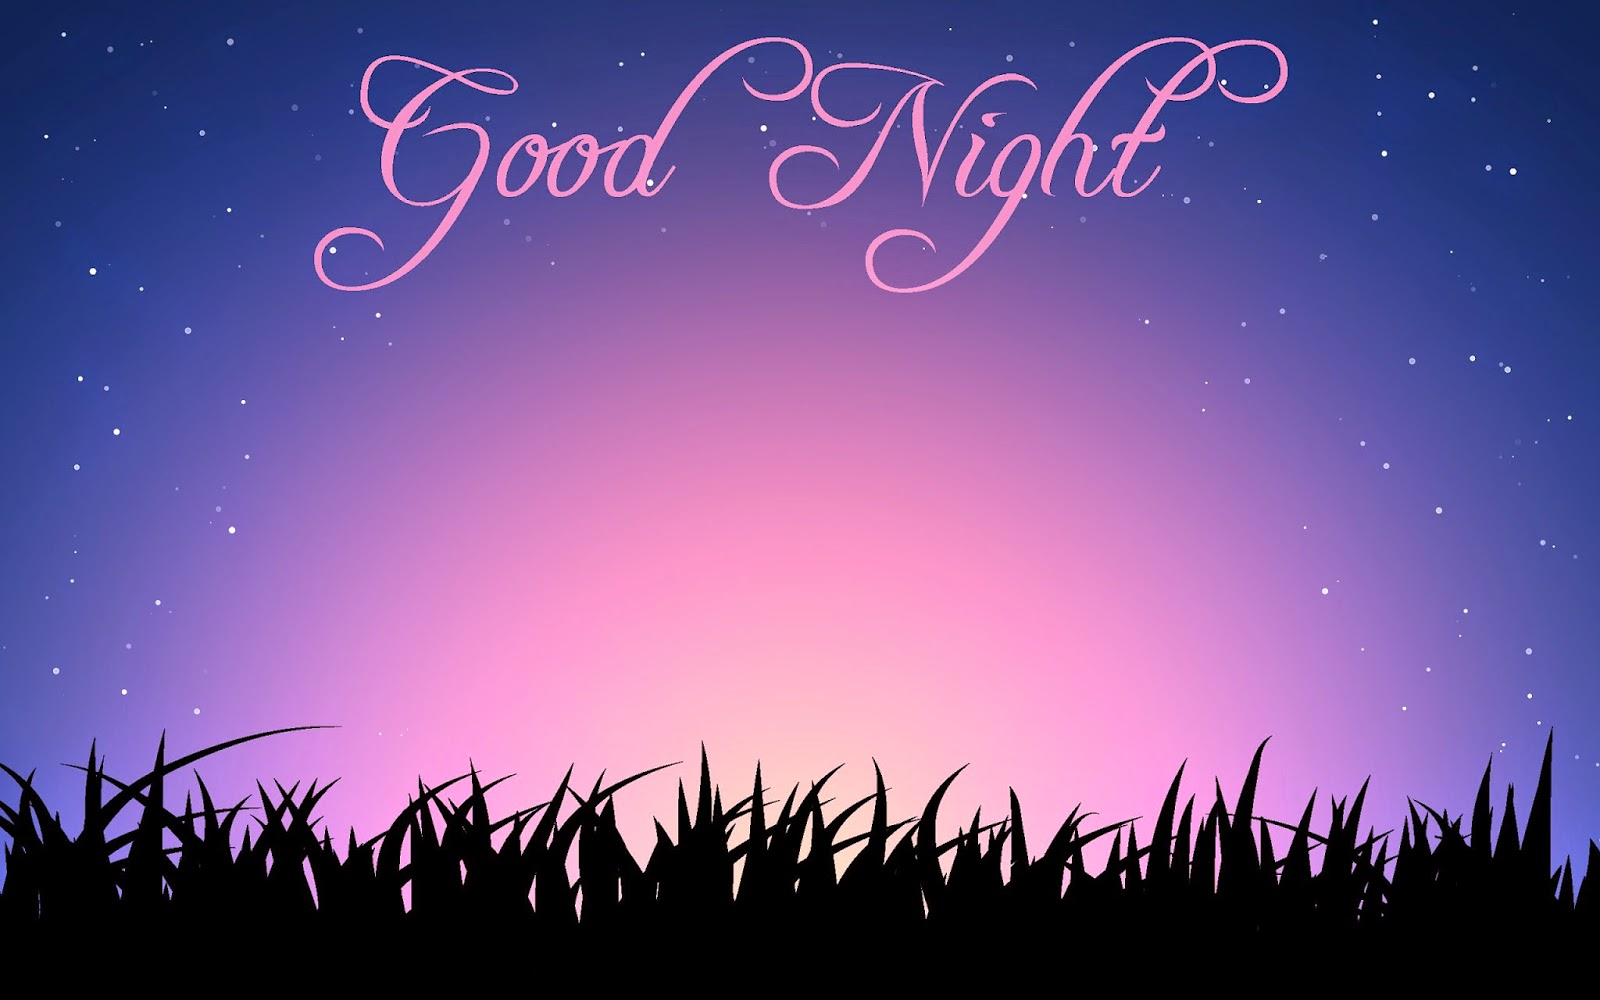 Wallpaper download english - Lovely Good Night Wallpaper